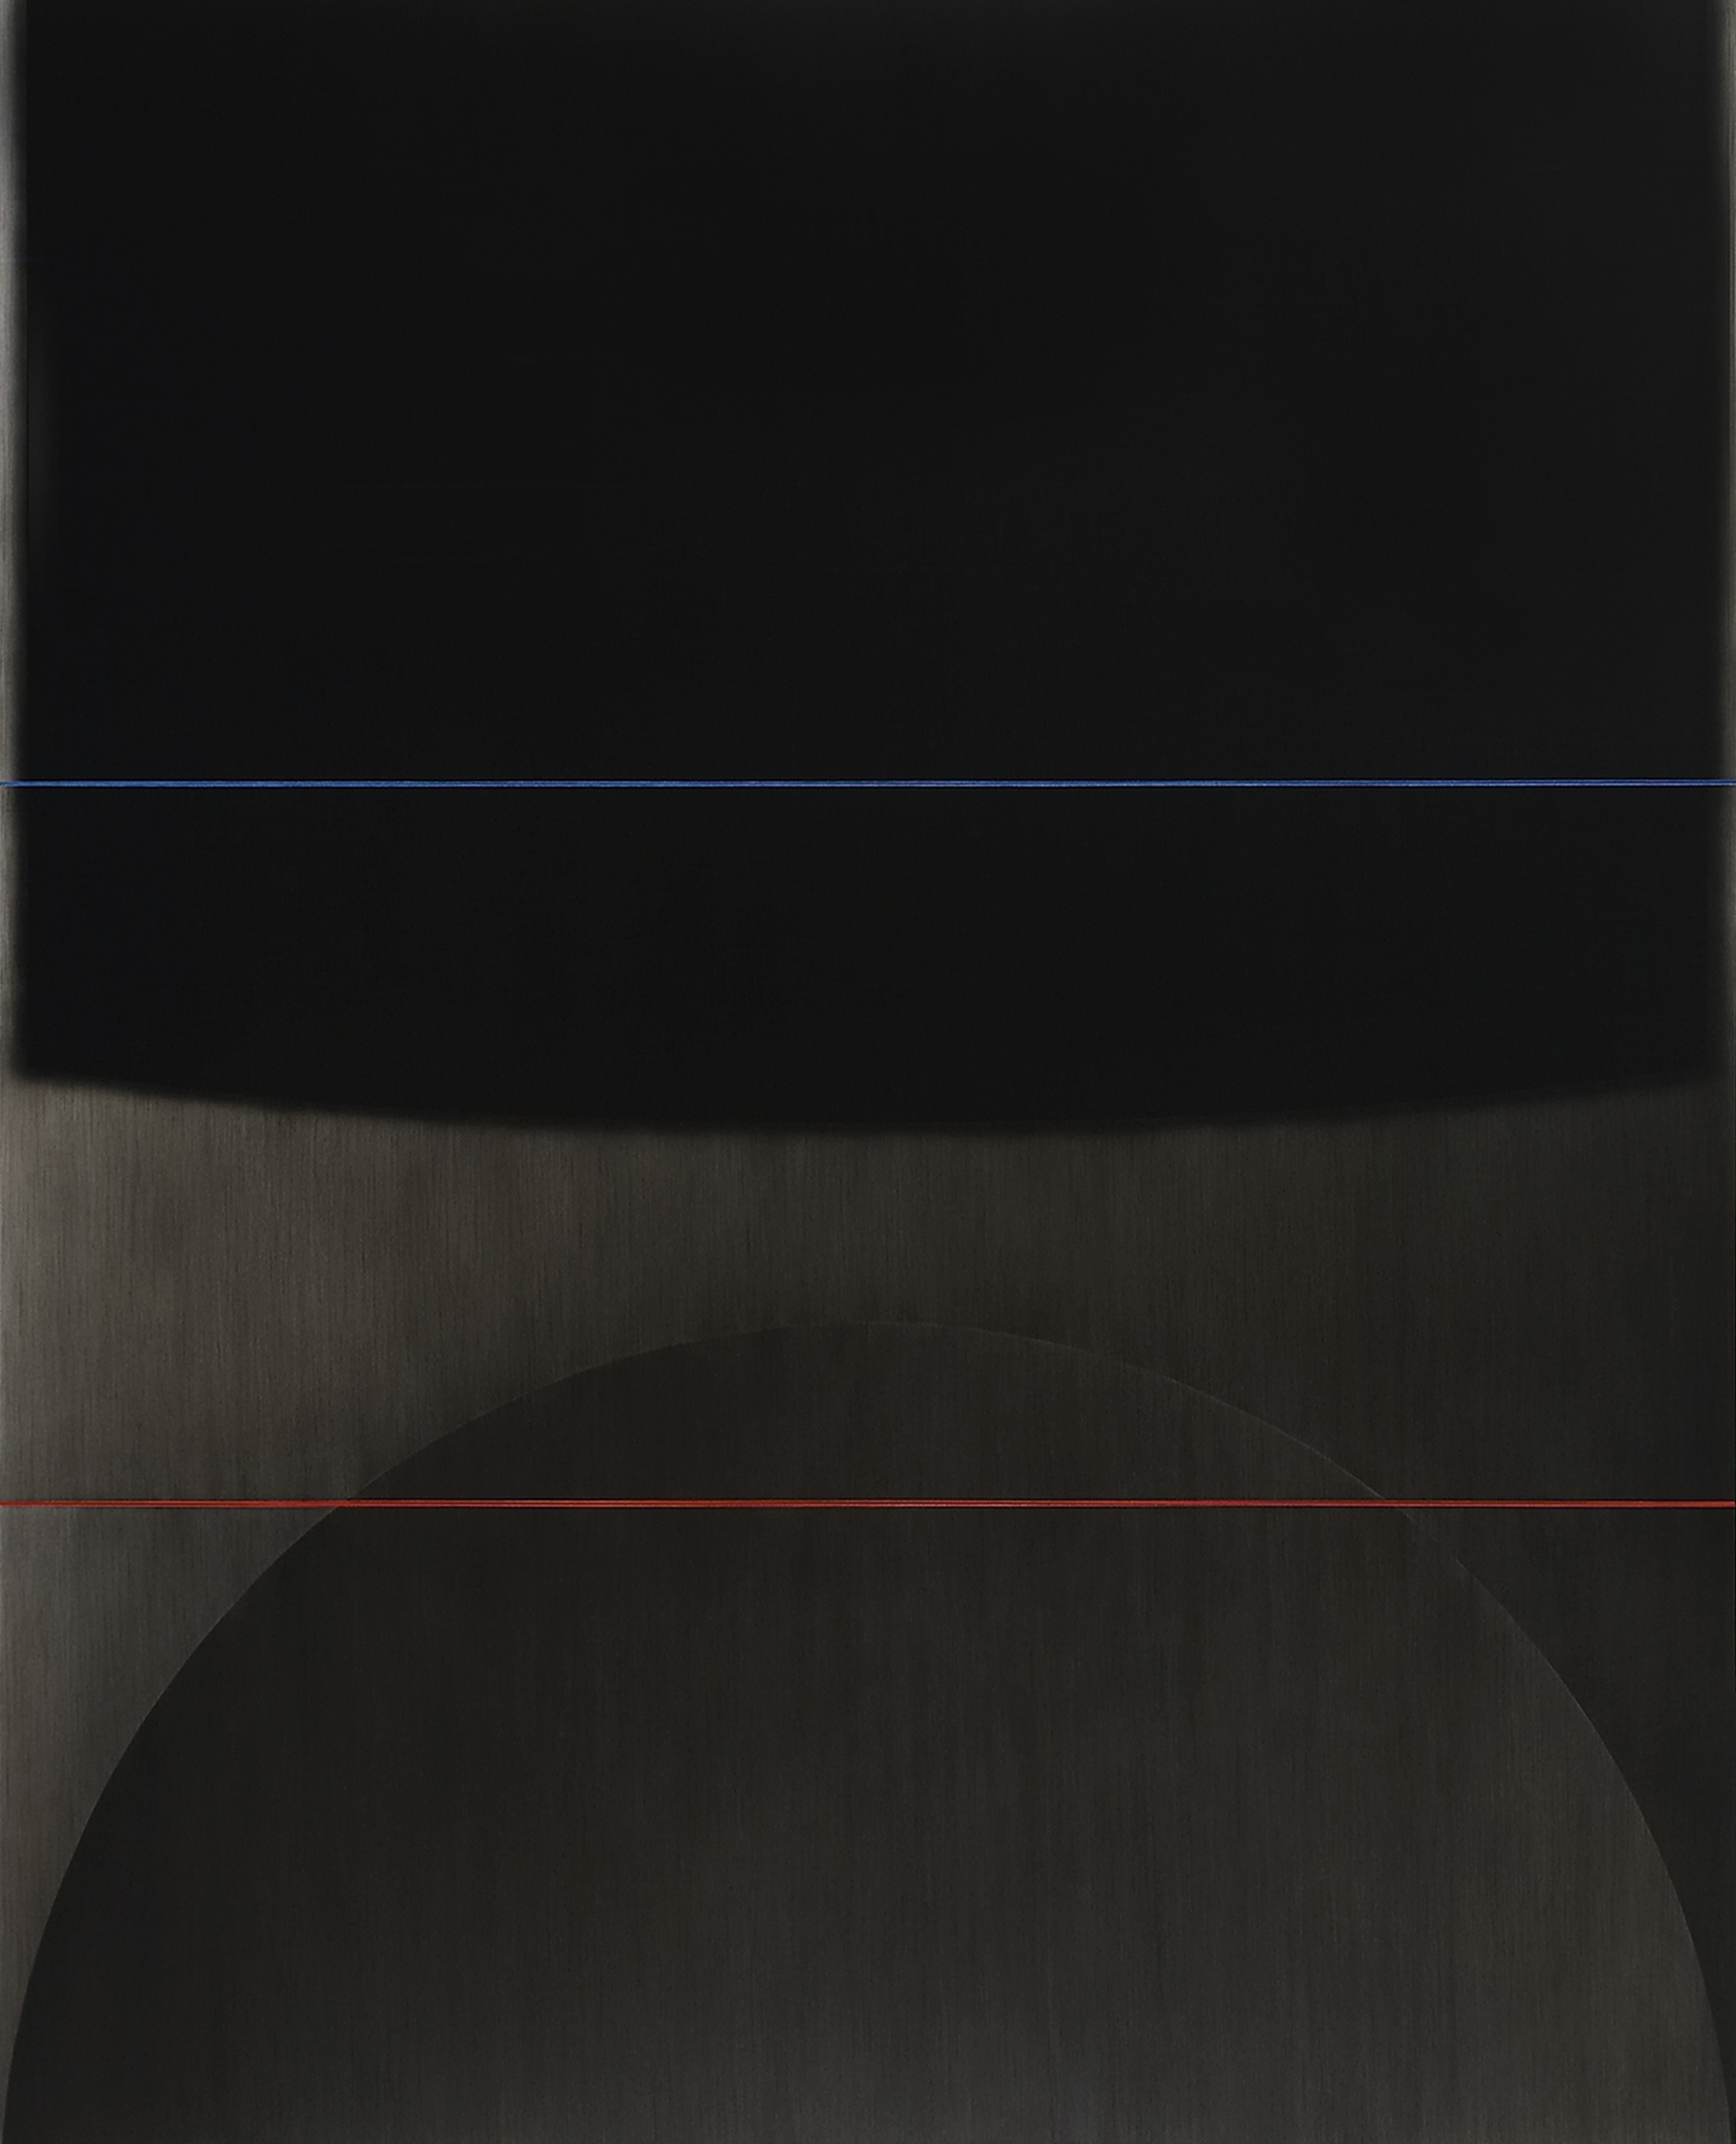 On two ways, 2005, acrylic on canvas, 118 1/18 x 98 7/16 in. [300x250cm]